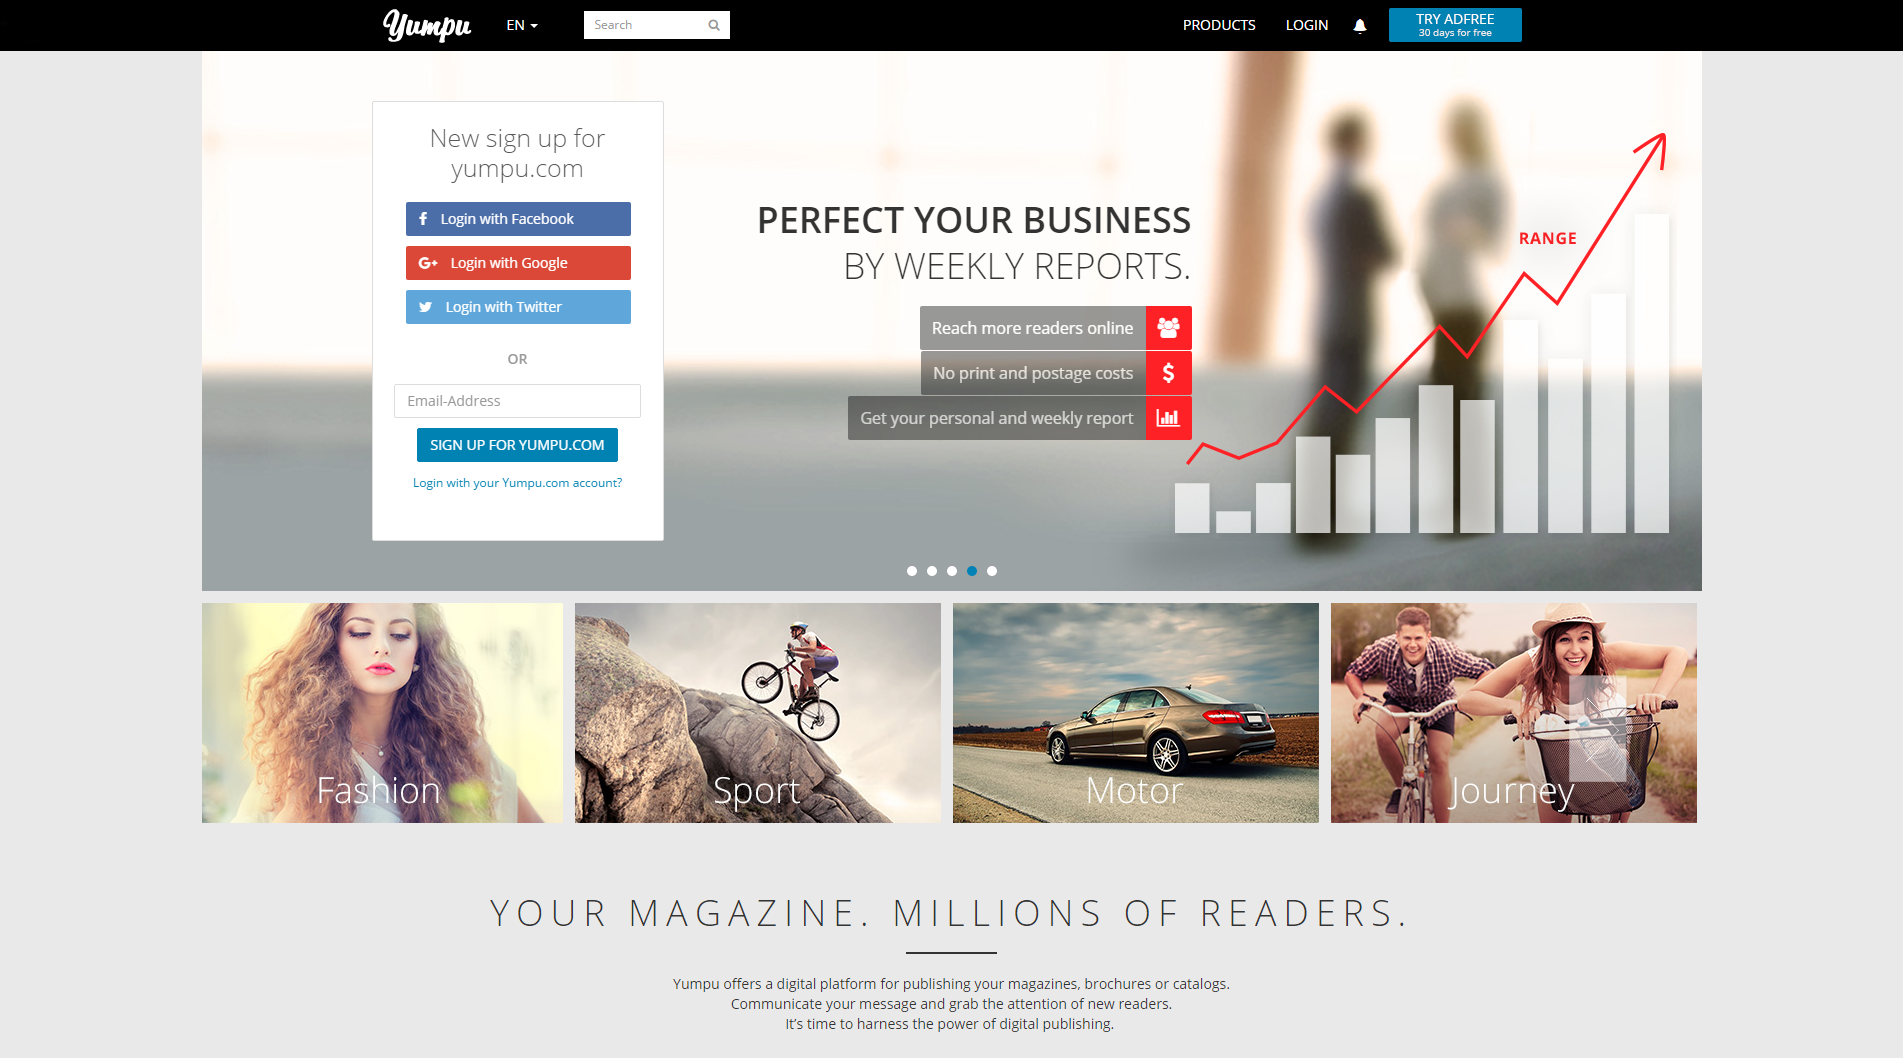 Magazine Publishing Software Comparison | Netspheres